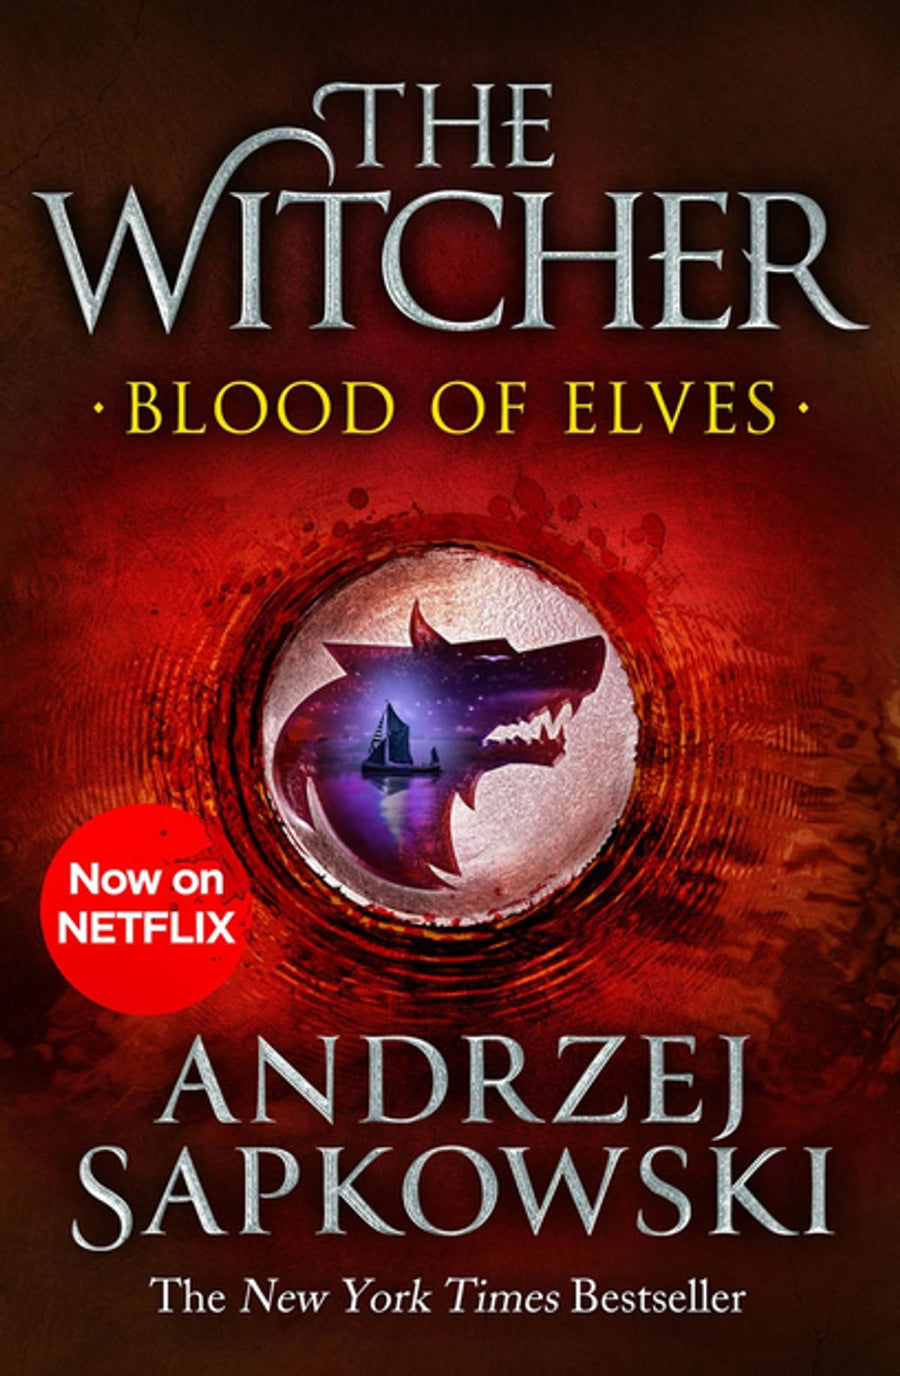 The Witcher Book 1: Blood of Elves